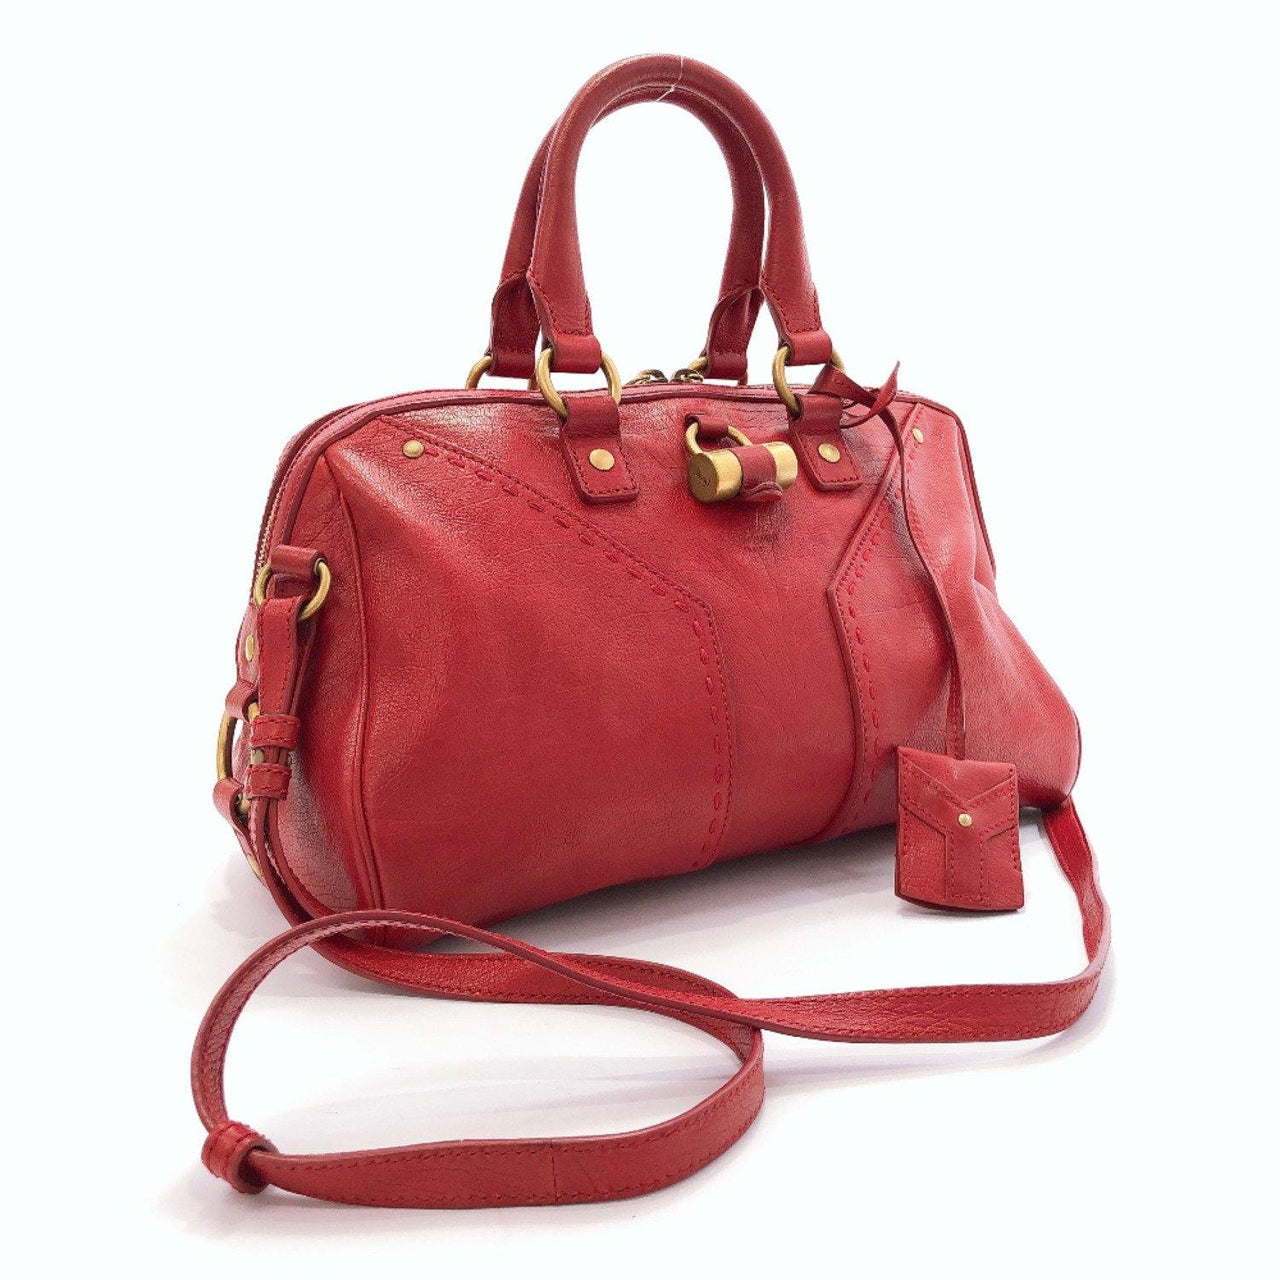 YVES SAINT LAURENT Handbag 2WAY leather Red Women Used - JP-BRANDS.com